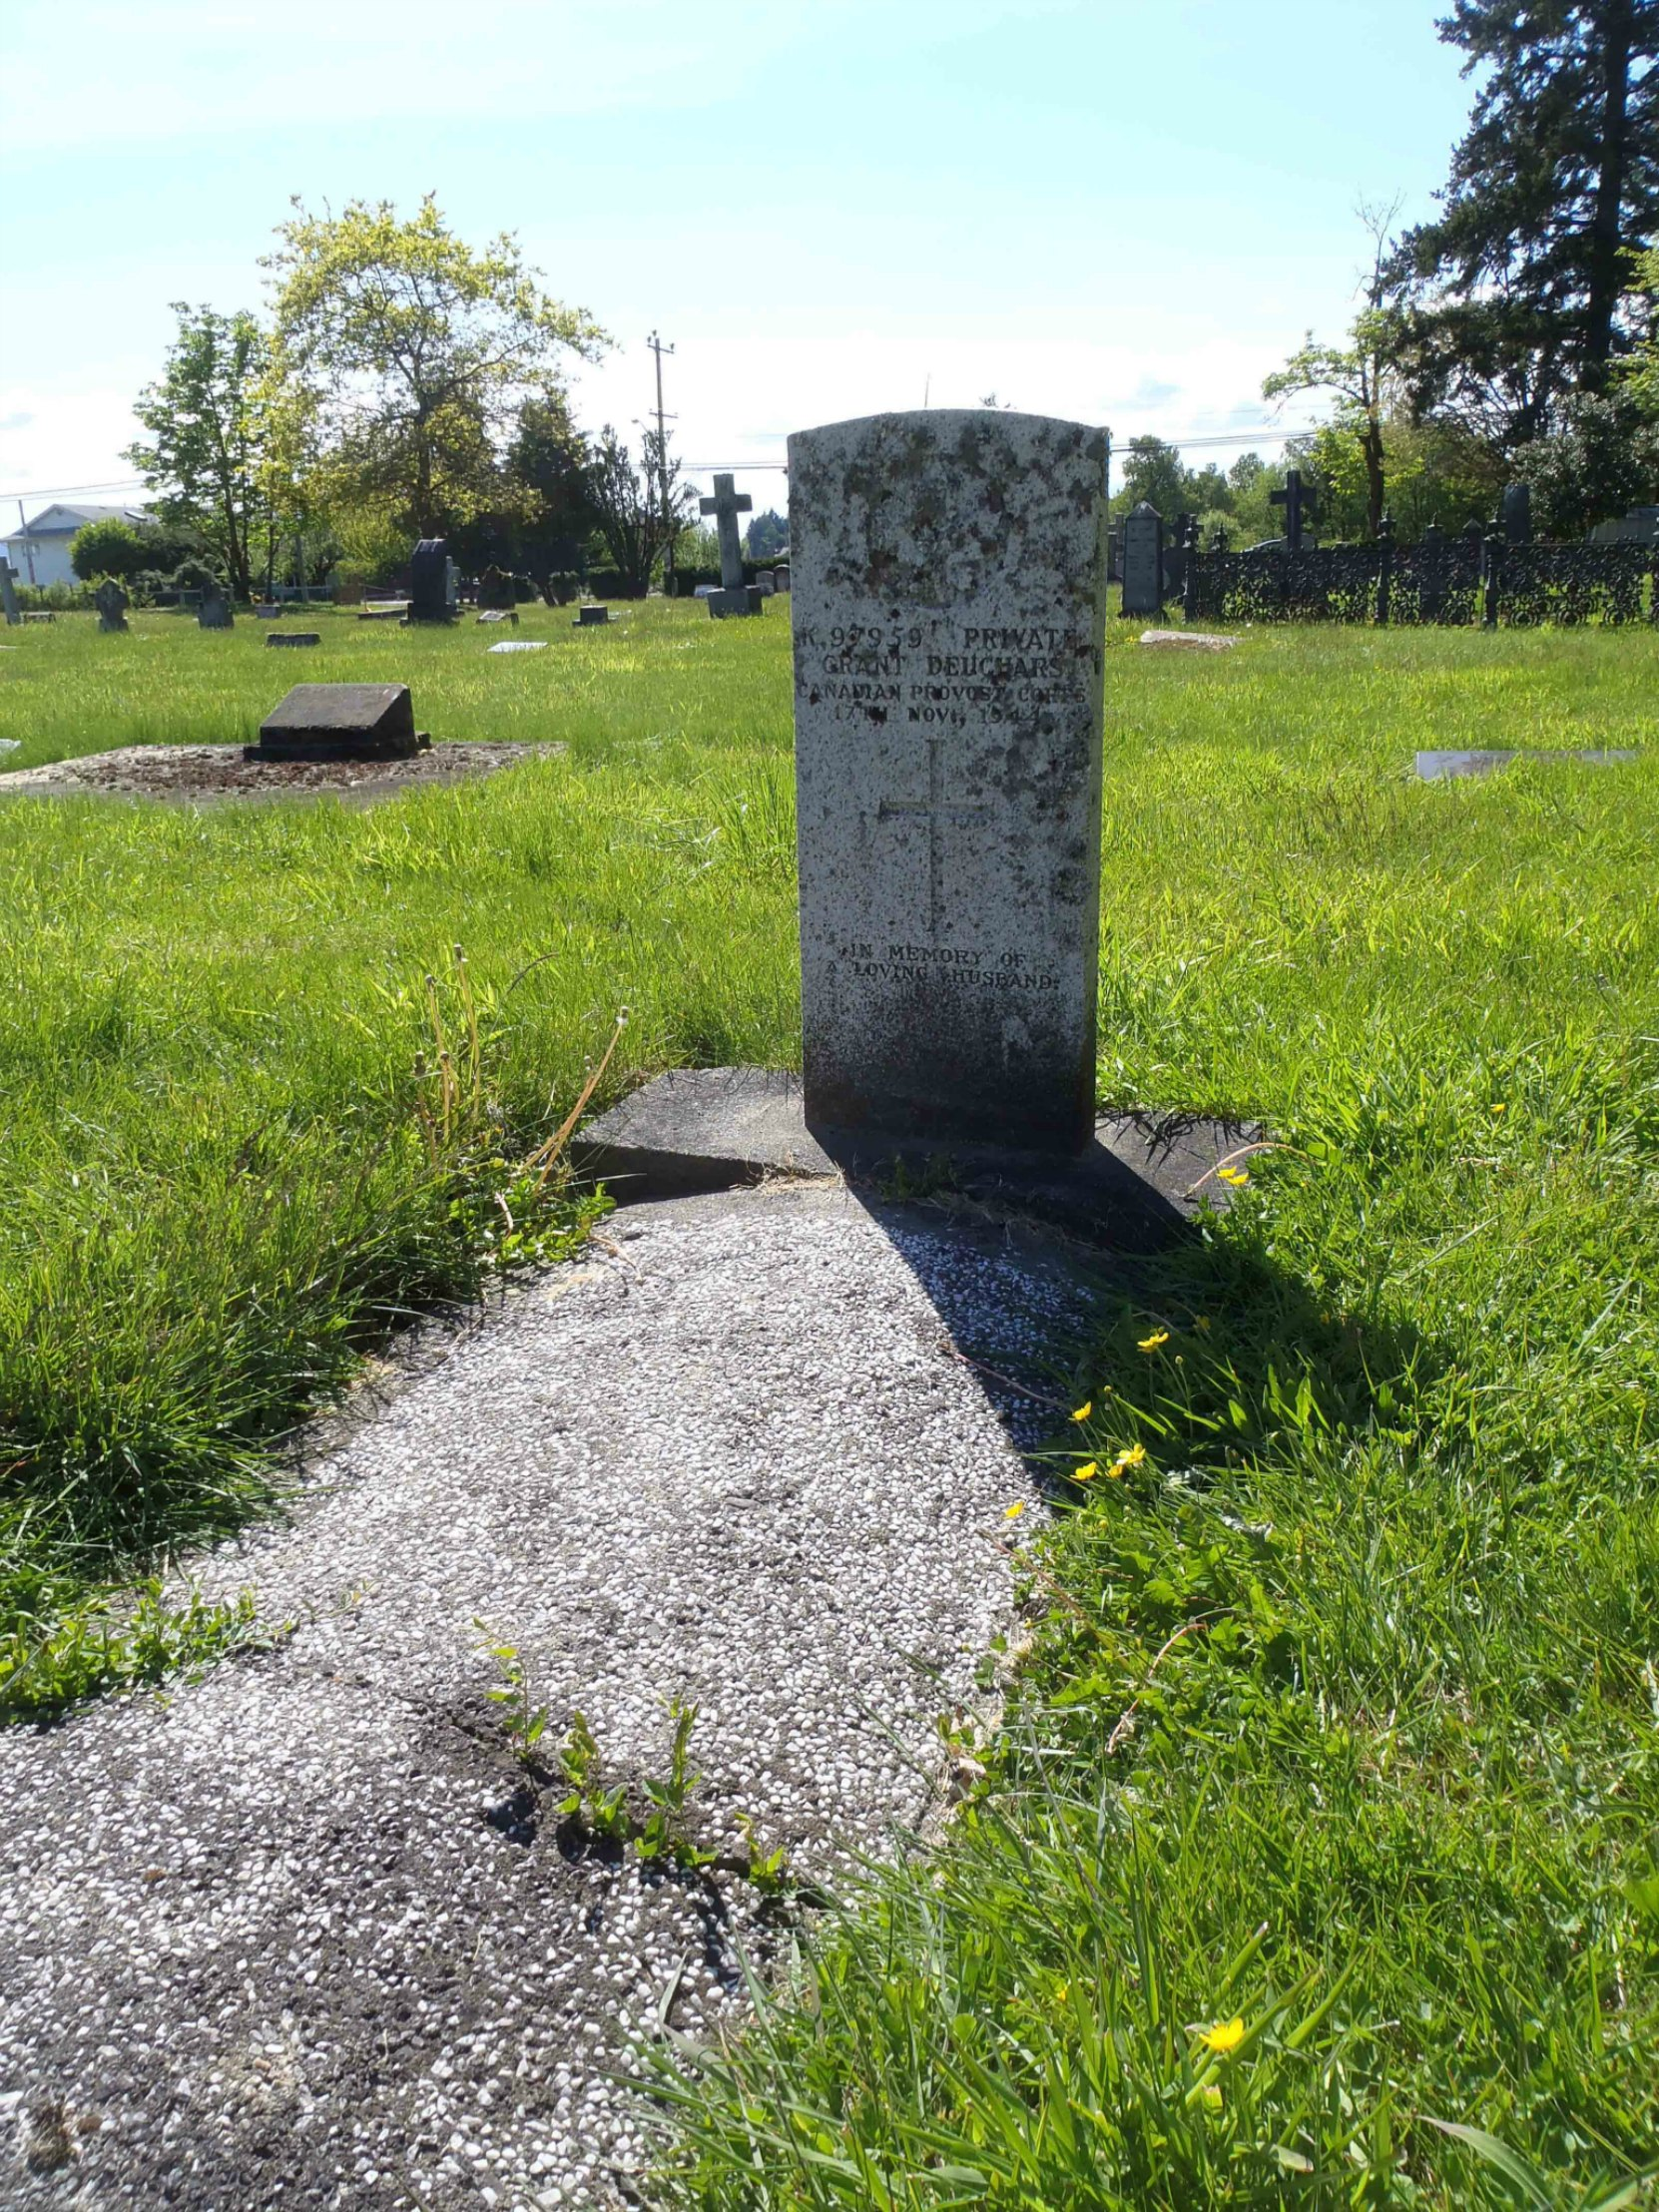 Grant Deuchars grave, St. Mary's Somenos Anglican Cemetery, North Cowichan, B.C.